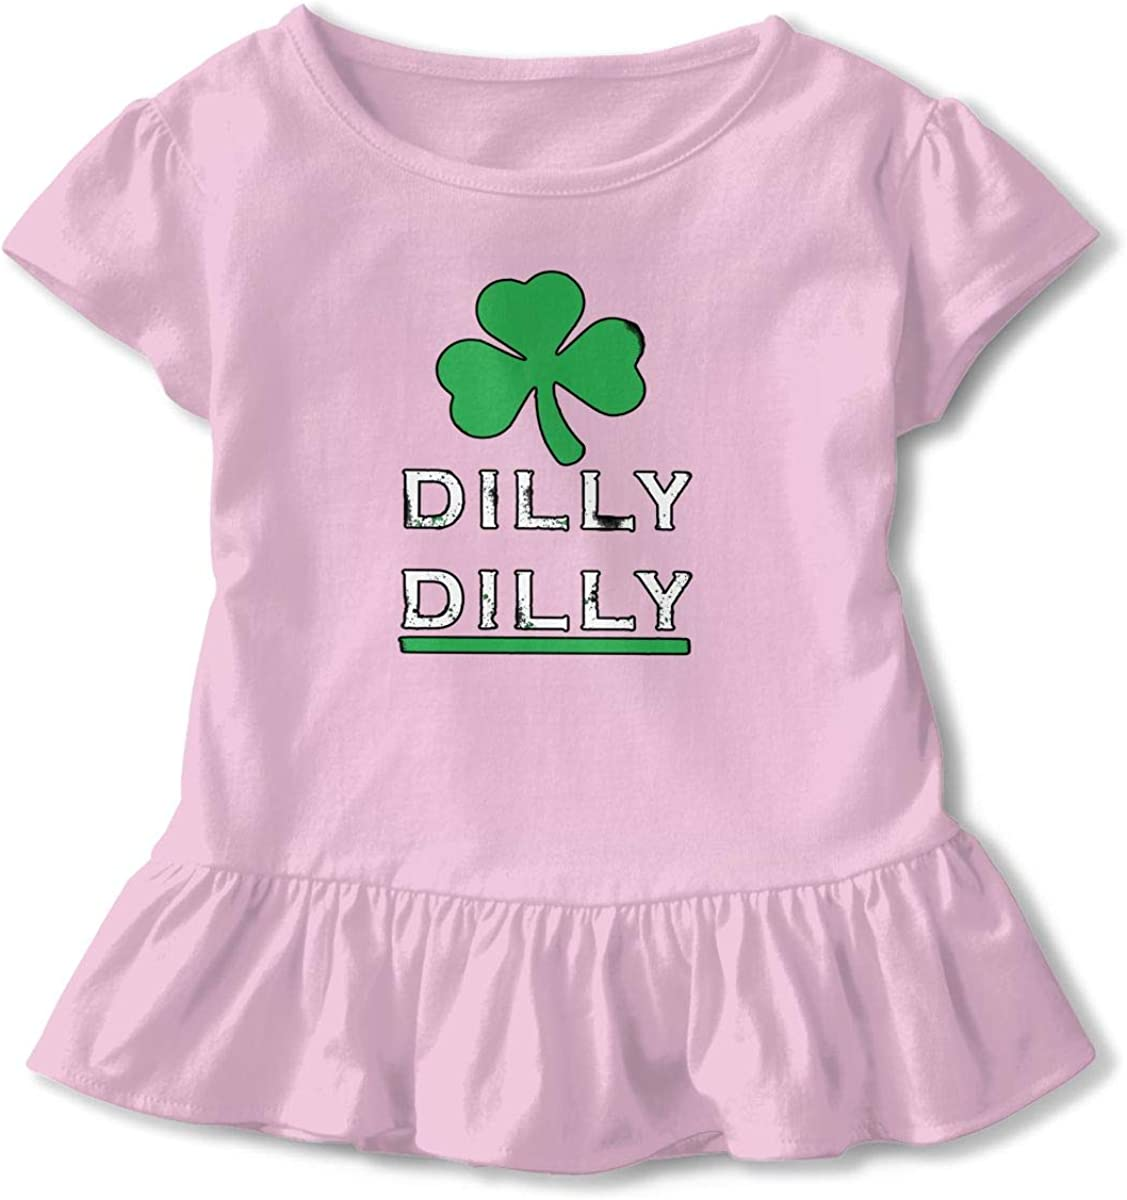 Vintage Dilly Dilly St Patricks Day Toddler Baby Girls Cotton Ruffle Short Sleeve Top Cute T-Shirt 2-6T